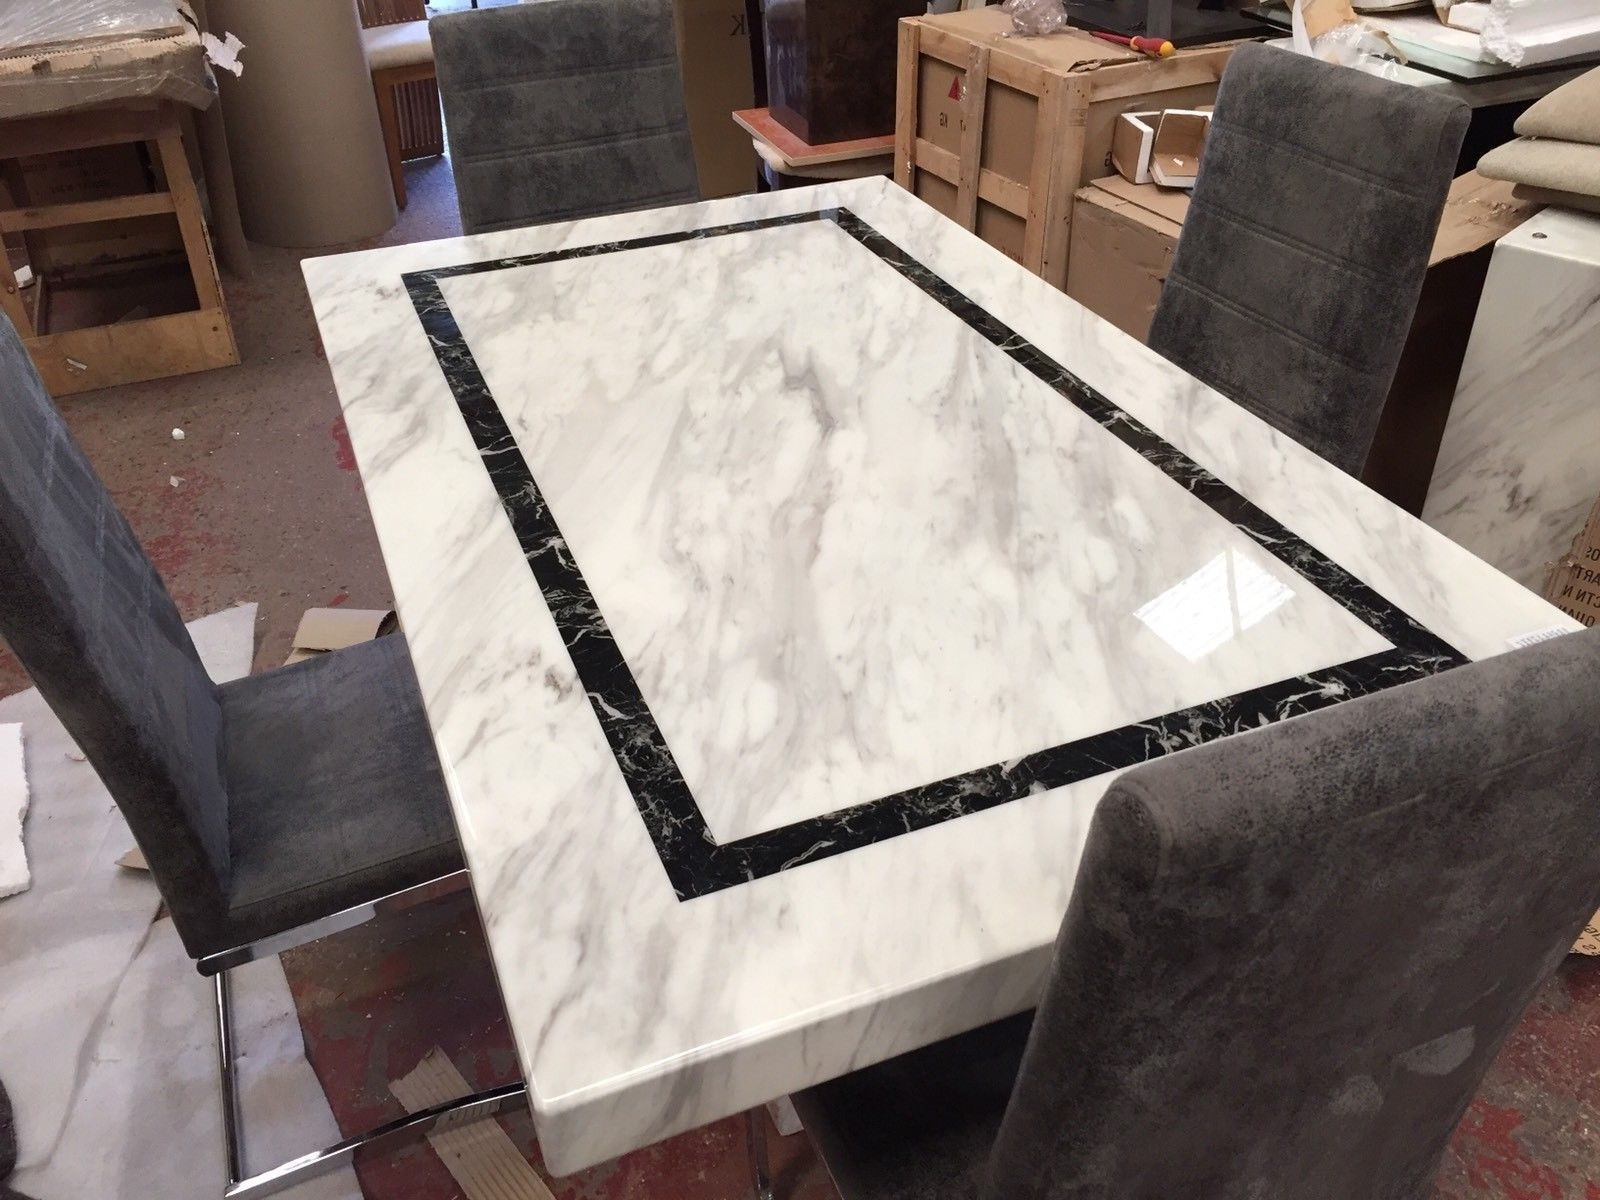 Ex Scs Alfrank Everest Marble Dining Table & 4 Chairs - £999.00 for Well-known Scs Dining Furniture